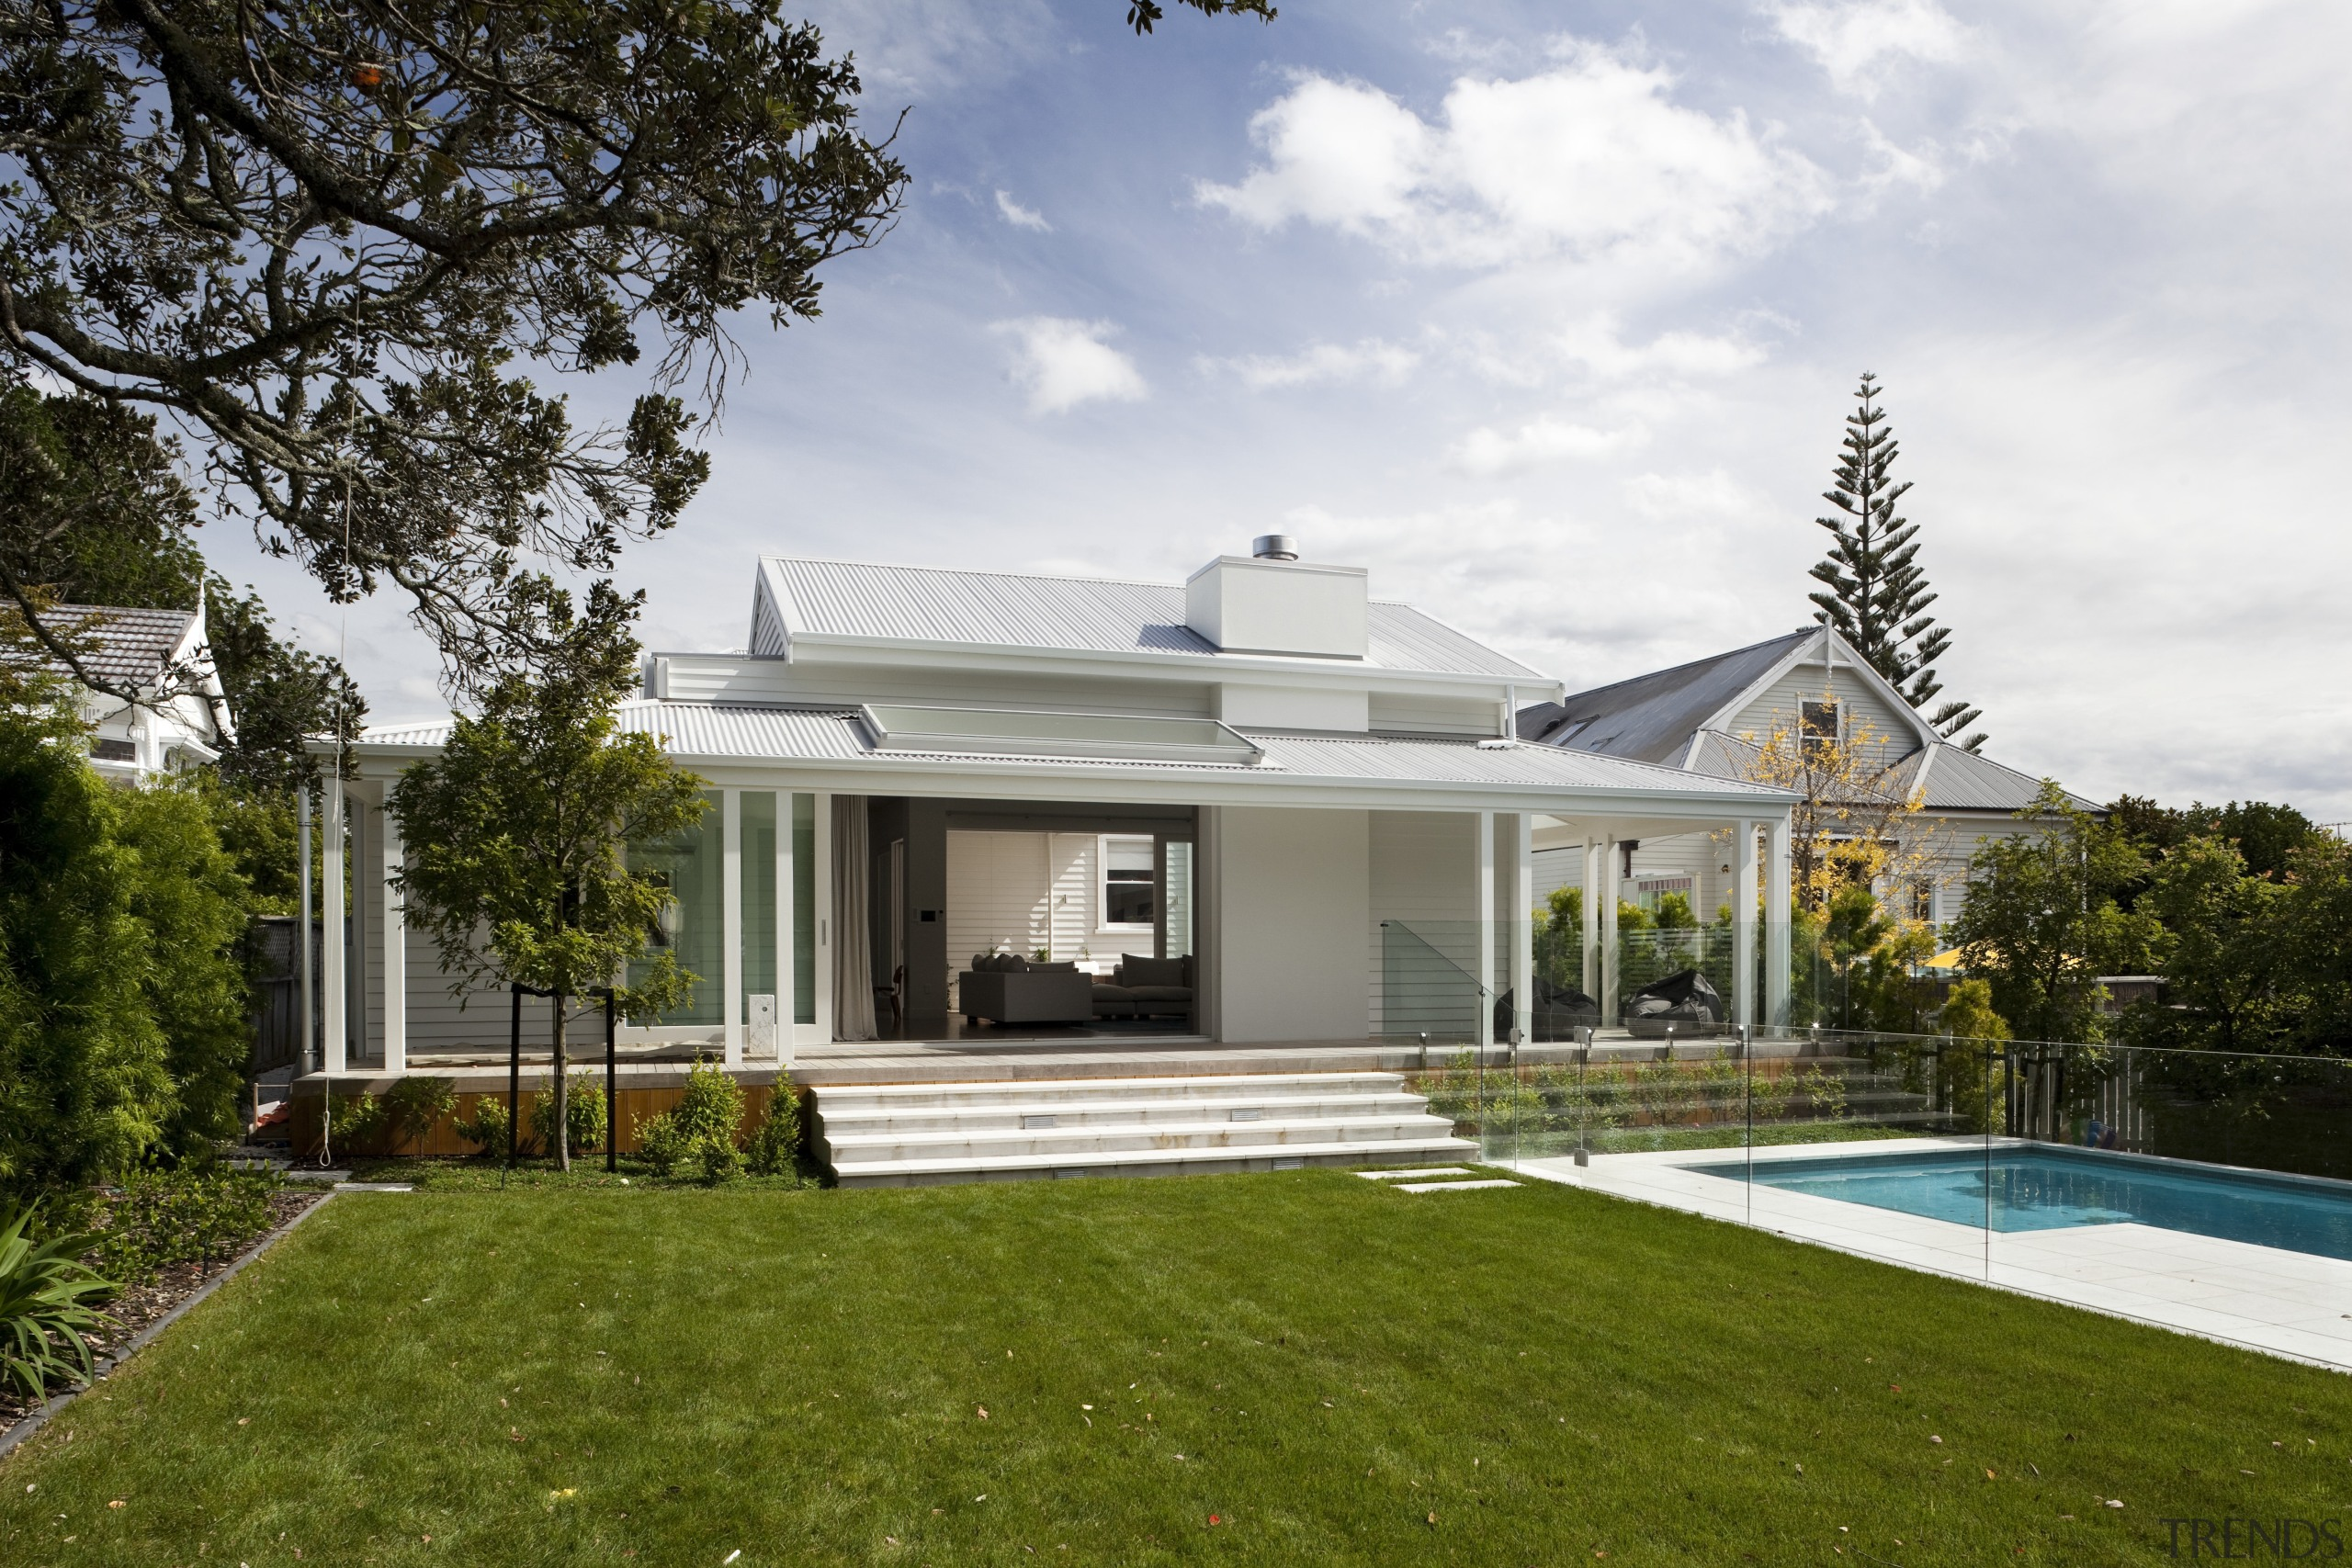 Exterior with pool and lawn. - Renovated and architecture, backyard, cottage, elevation, estate, facade, farmhouse, home, house, mansion, property, real estate, residential area, roof, villa, white, brown